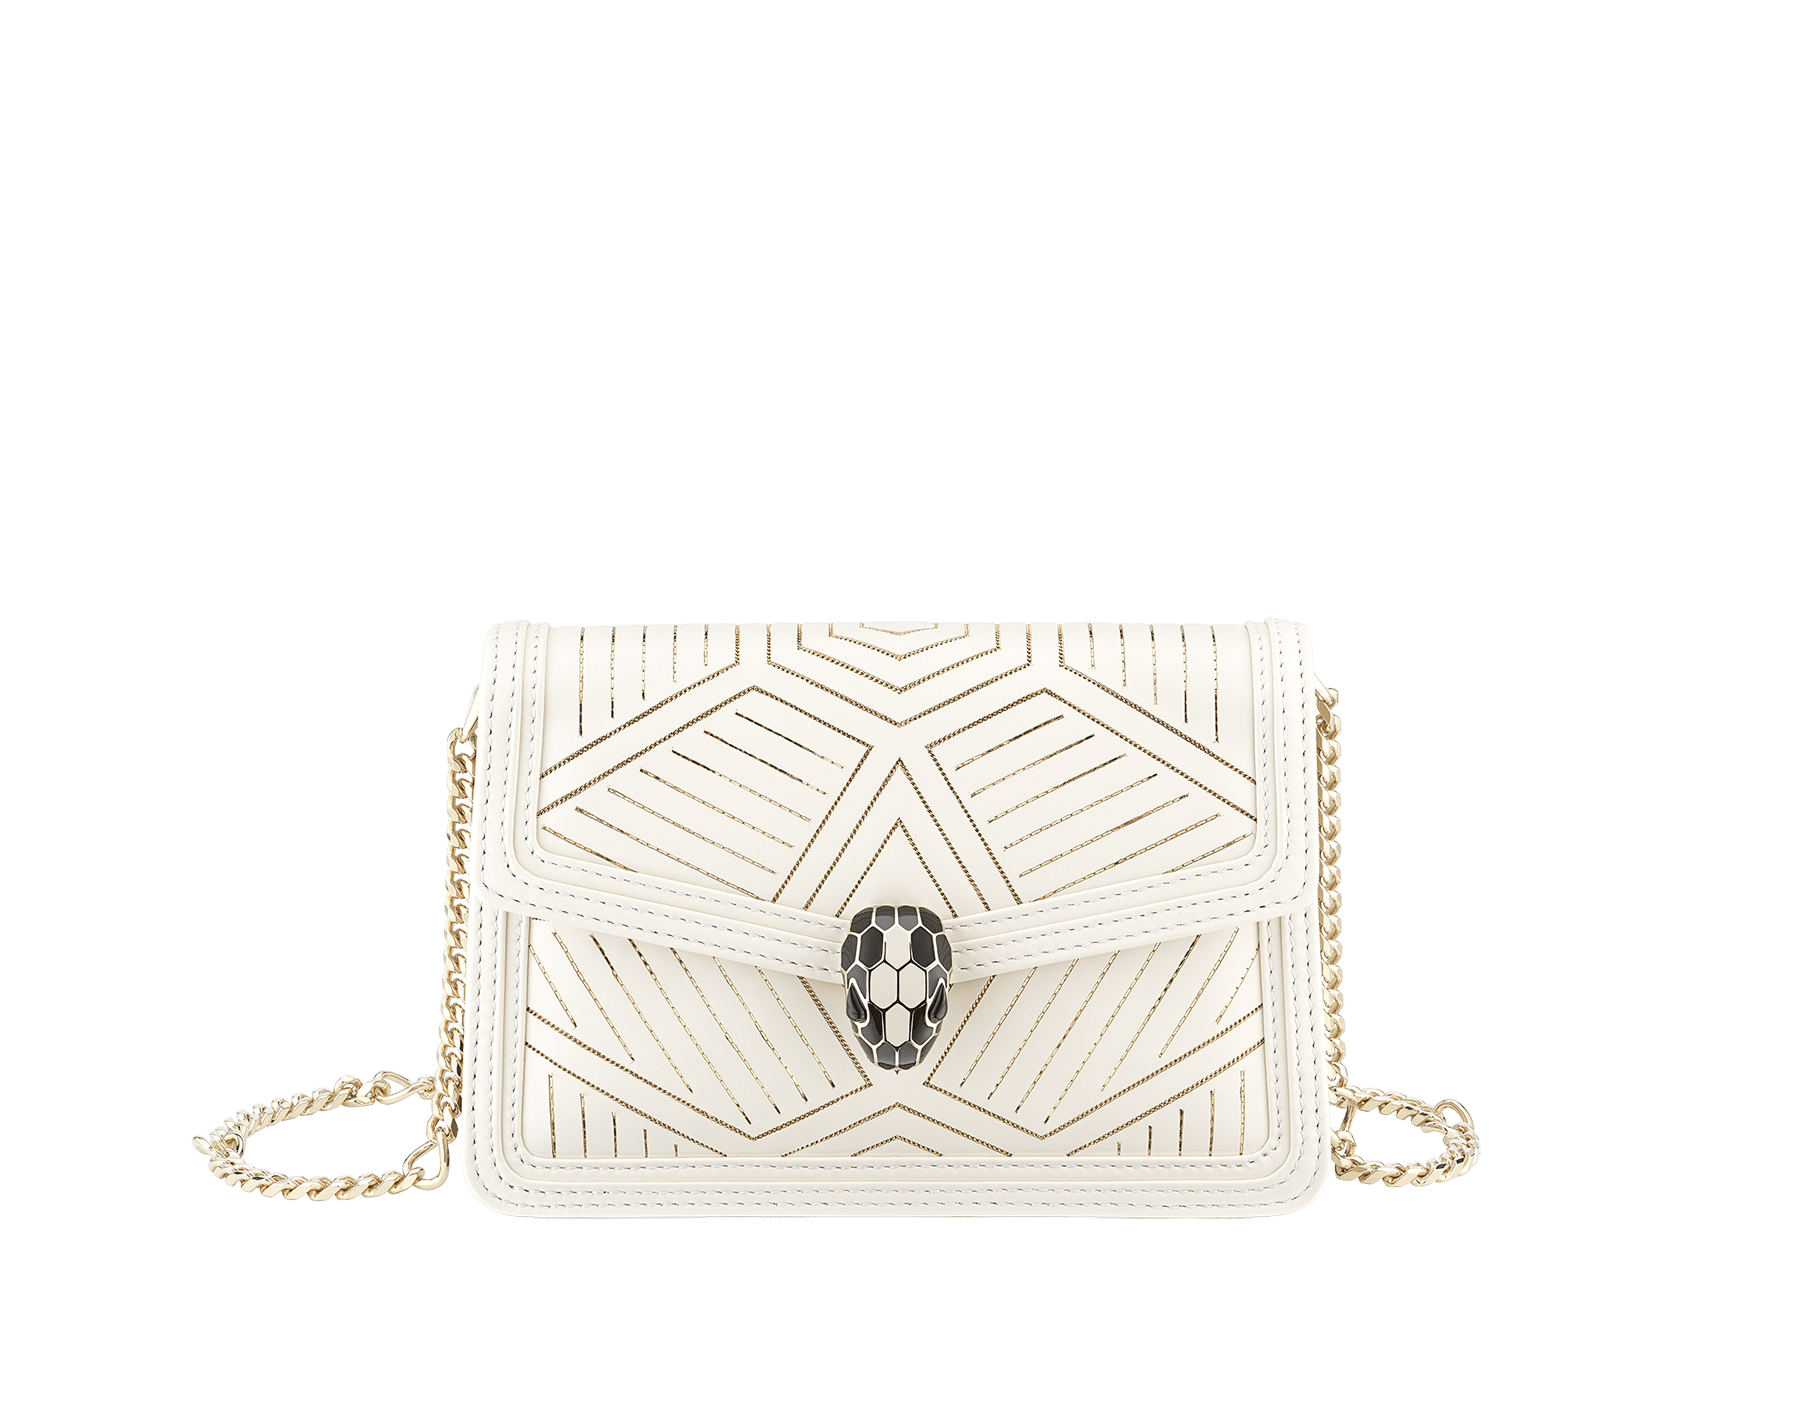 """Serpenti Diamond Blast"" shoulder bag in white agate calf leather, featuring a Whispy Chain motif in light gold finishing. Iconic snakehead closure in light gold plated brass enriched with black and white agate enamel and black onyx eyes. 288986 image 1"